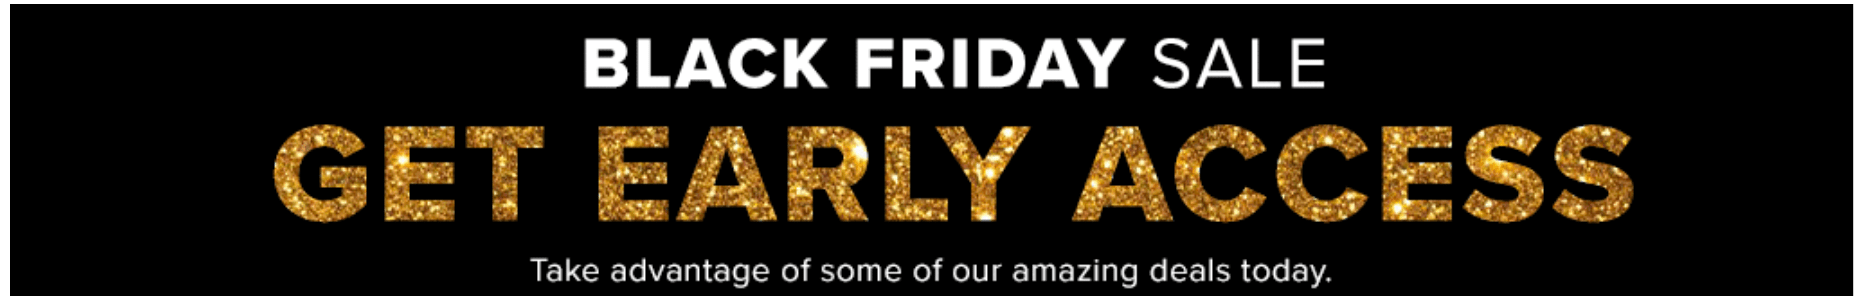 Hudson's Bay Canada Black Friday Early Access Sale!